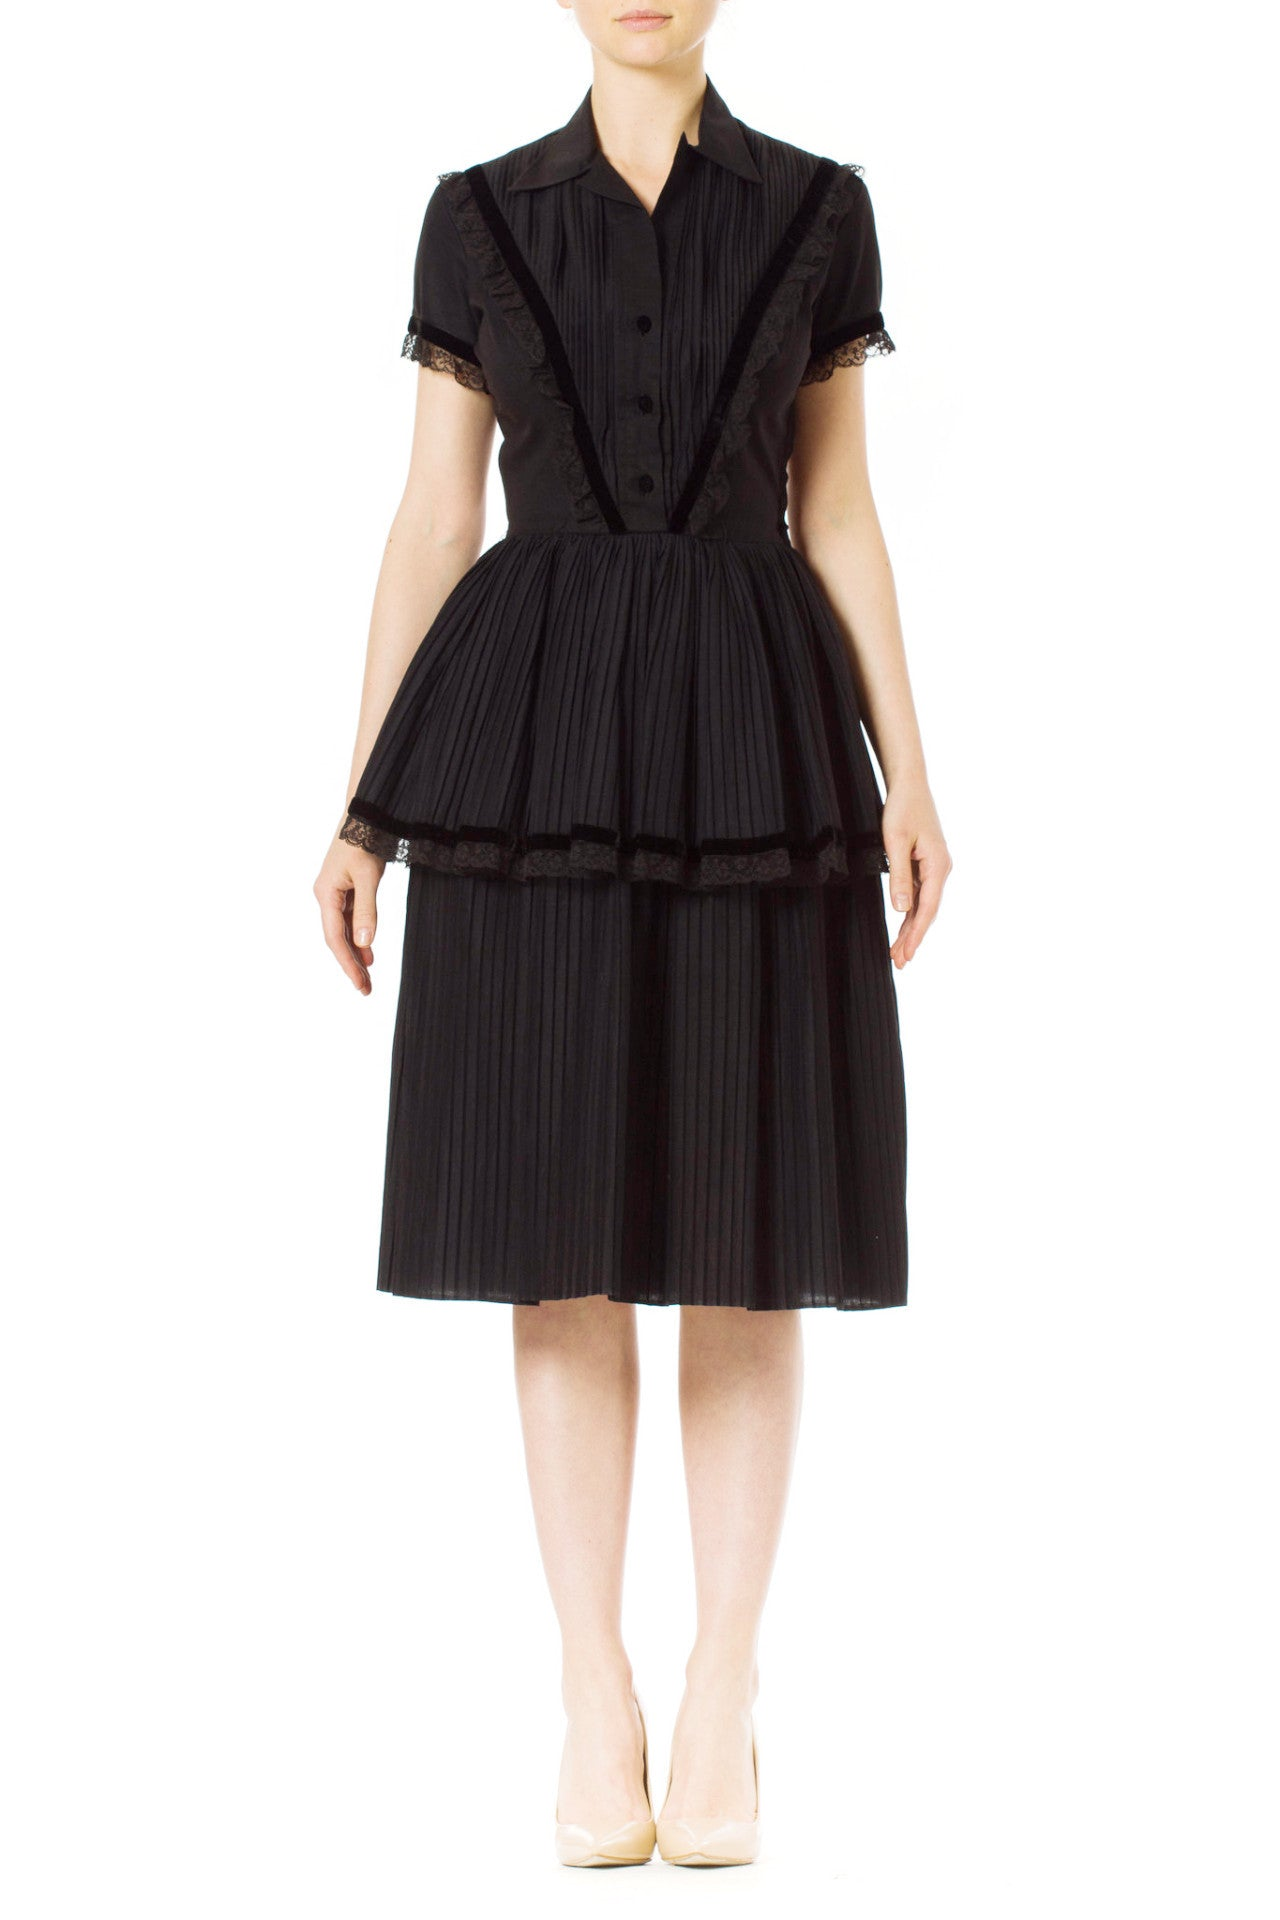 1950's Pleated Teered Skirt Cotton Day Dress